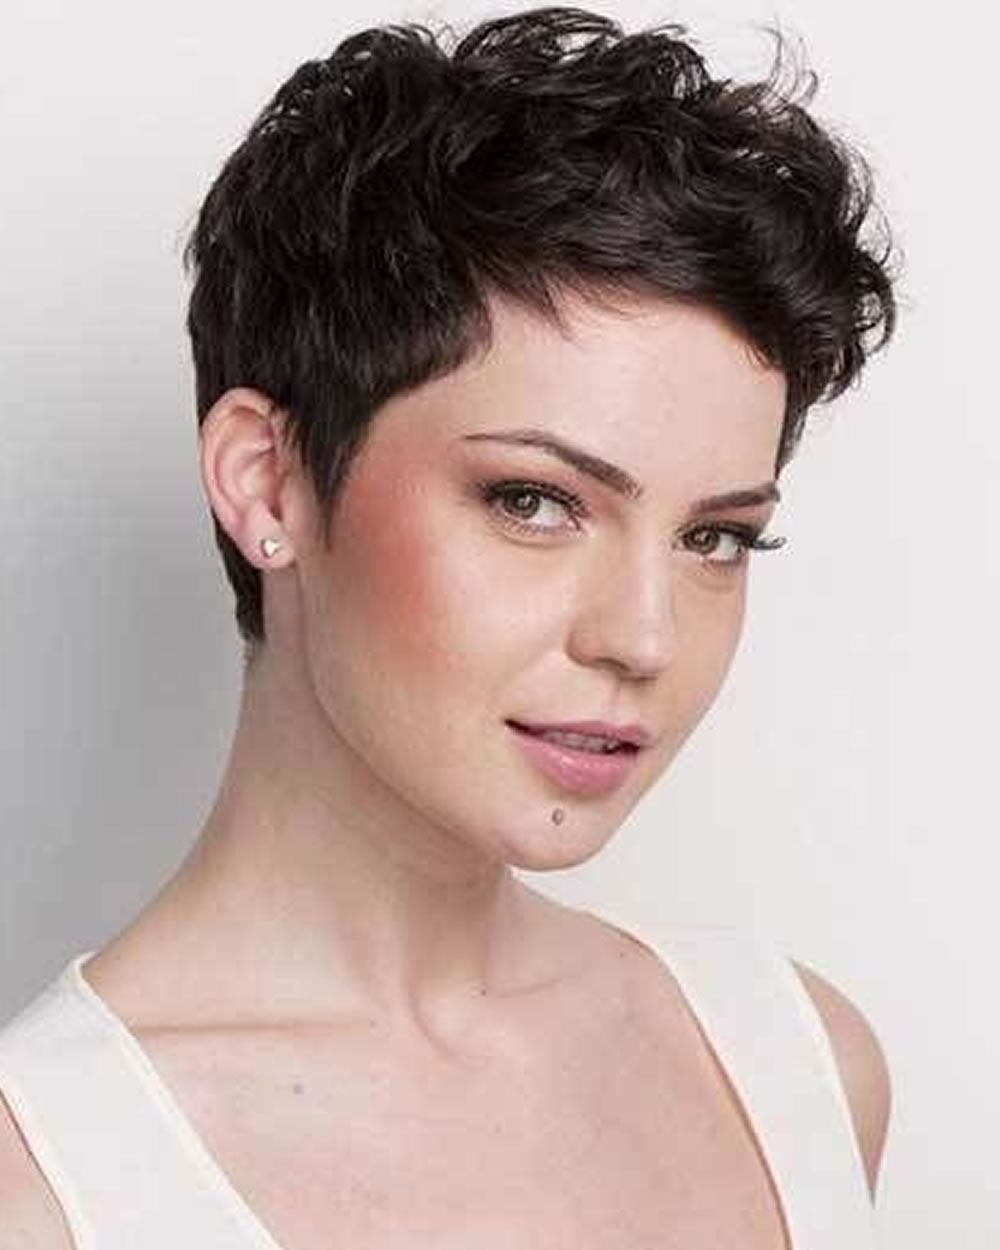 Pixie Hairstyles Fine Hair For Round Face 2018 2019 | Page 5 Of 8 Pertaining To Most Popular Pixie Hairstyles For Fat Faces (View 8 of 15)